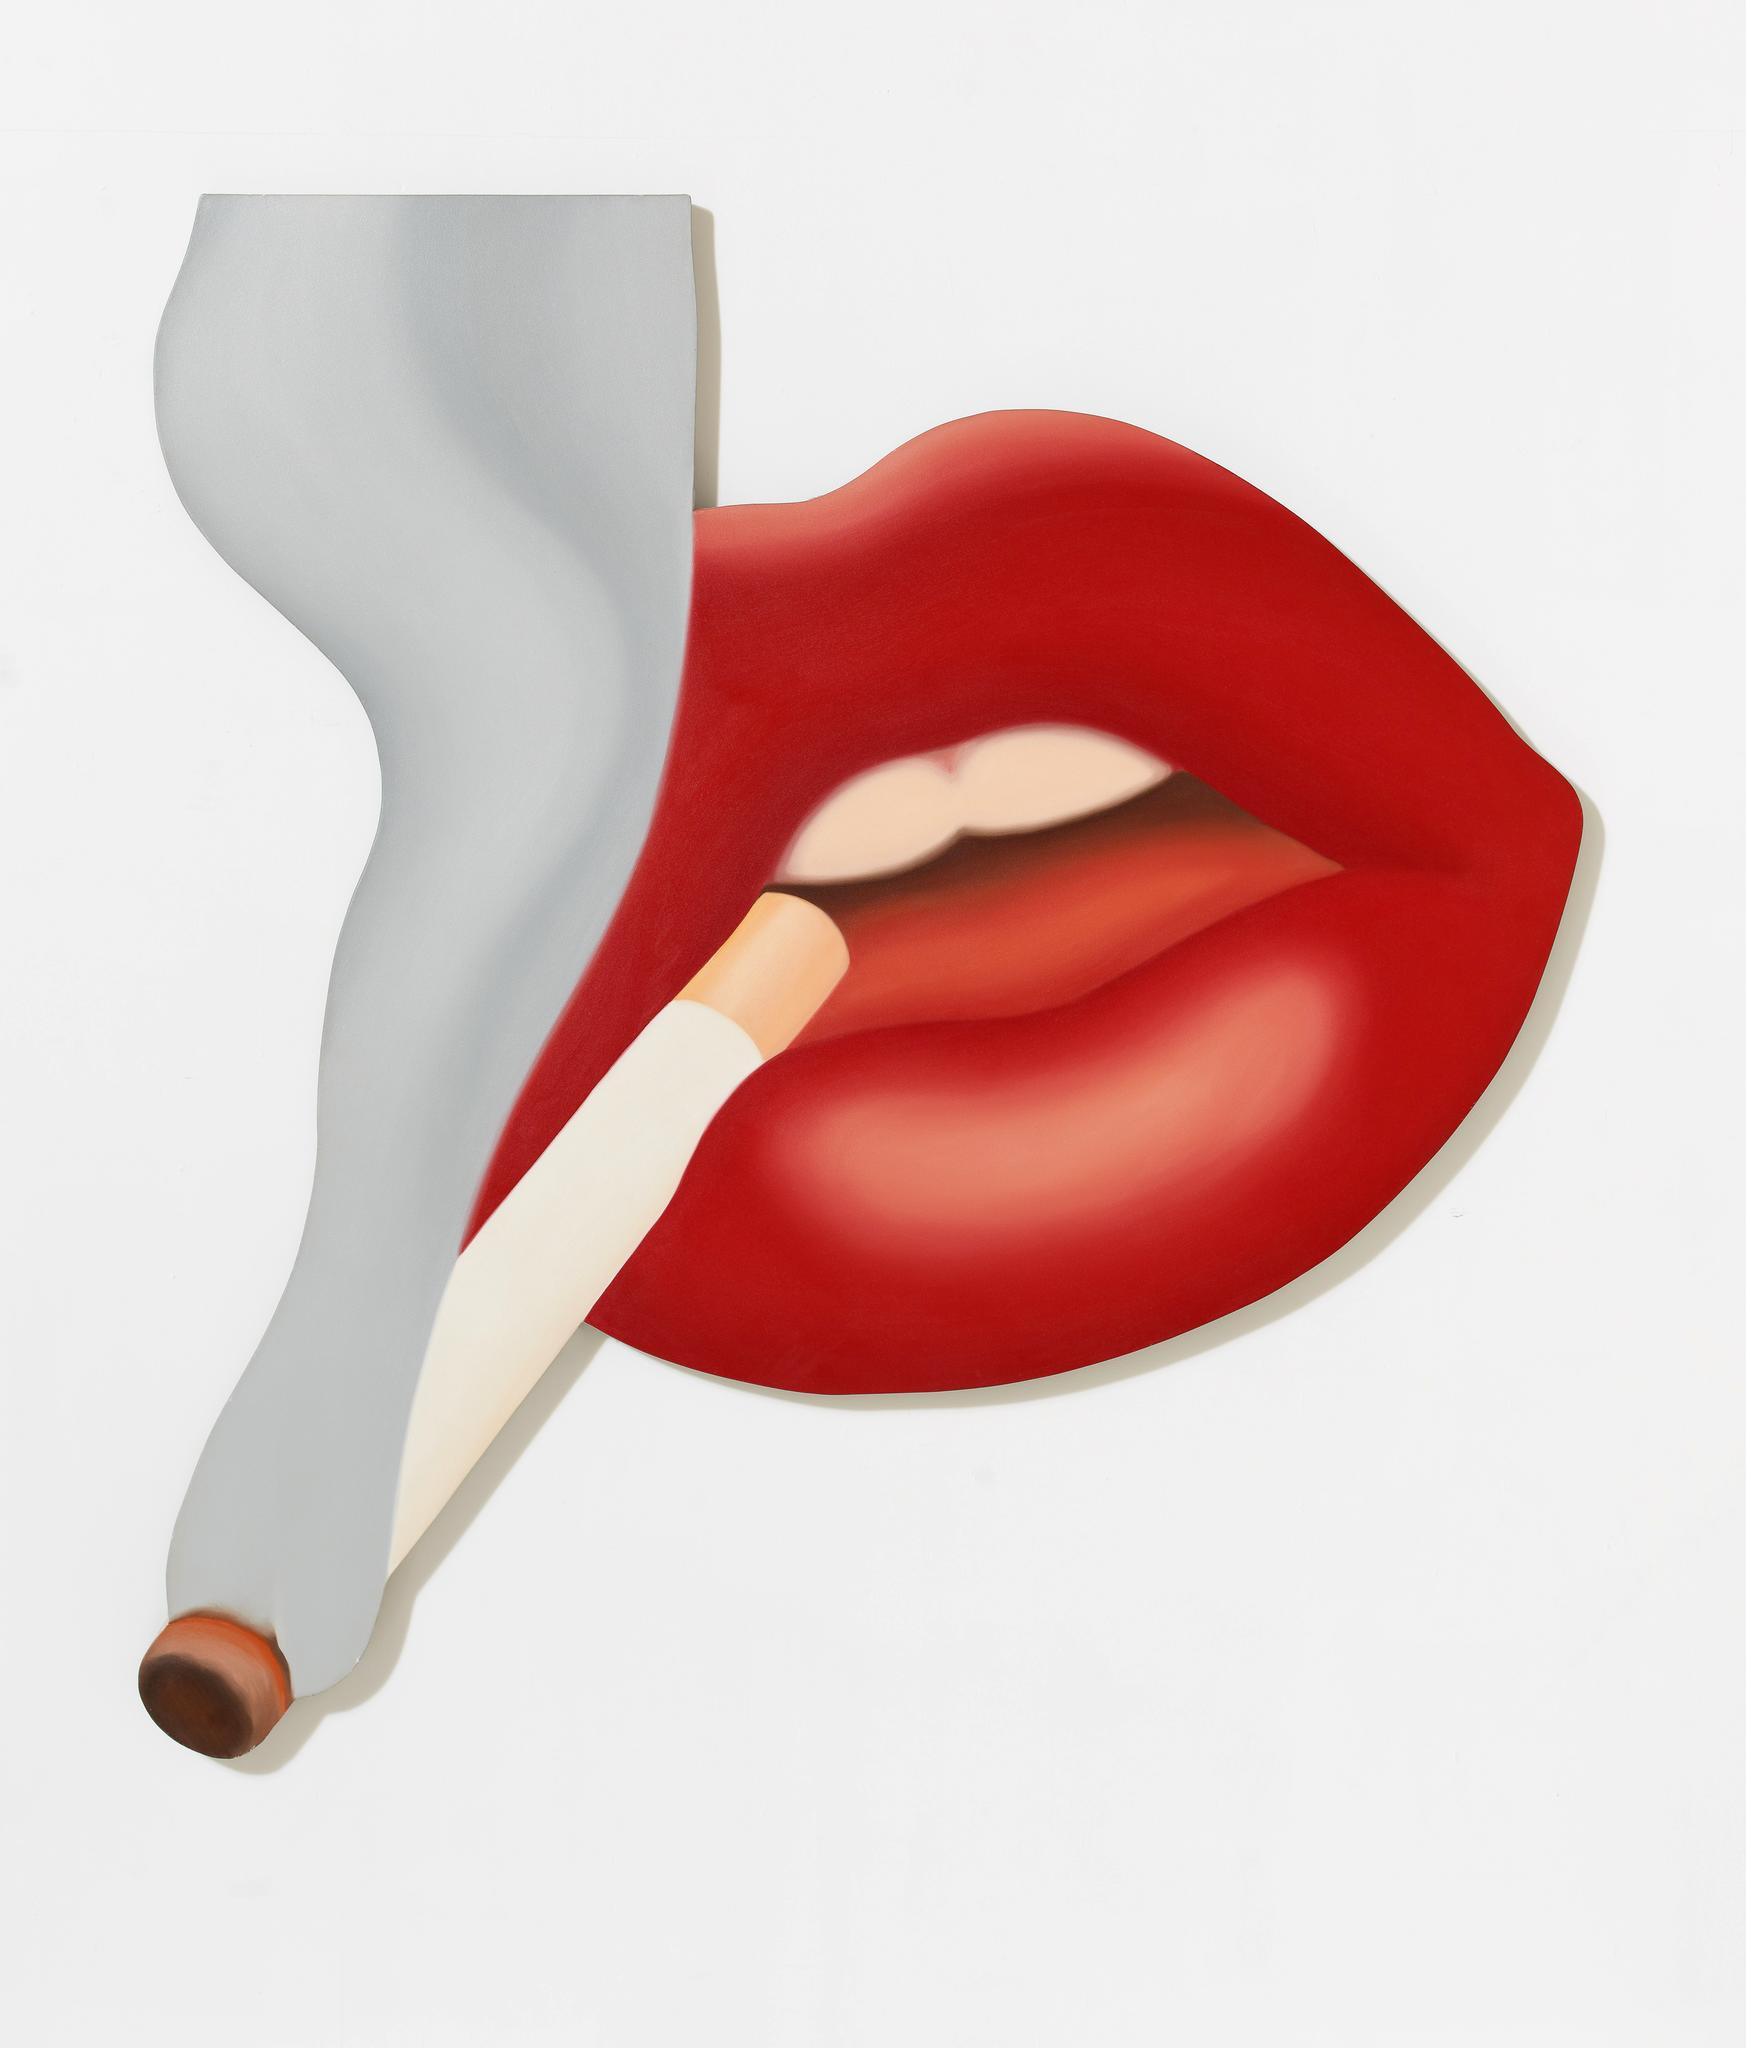 Tom Wesselmann, Smoker #3 (Mouth #17)', 1968 Courtesy of The Estate of Tom Wesselmann and Almine Rech Gallery